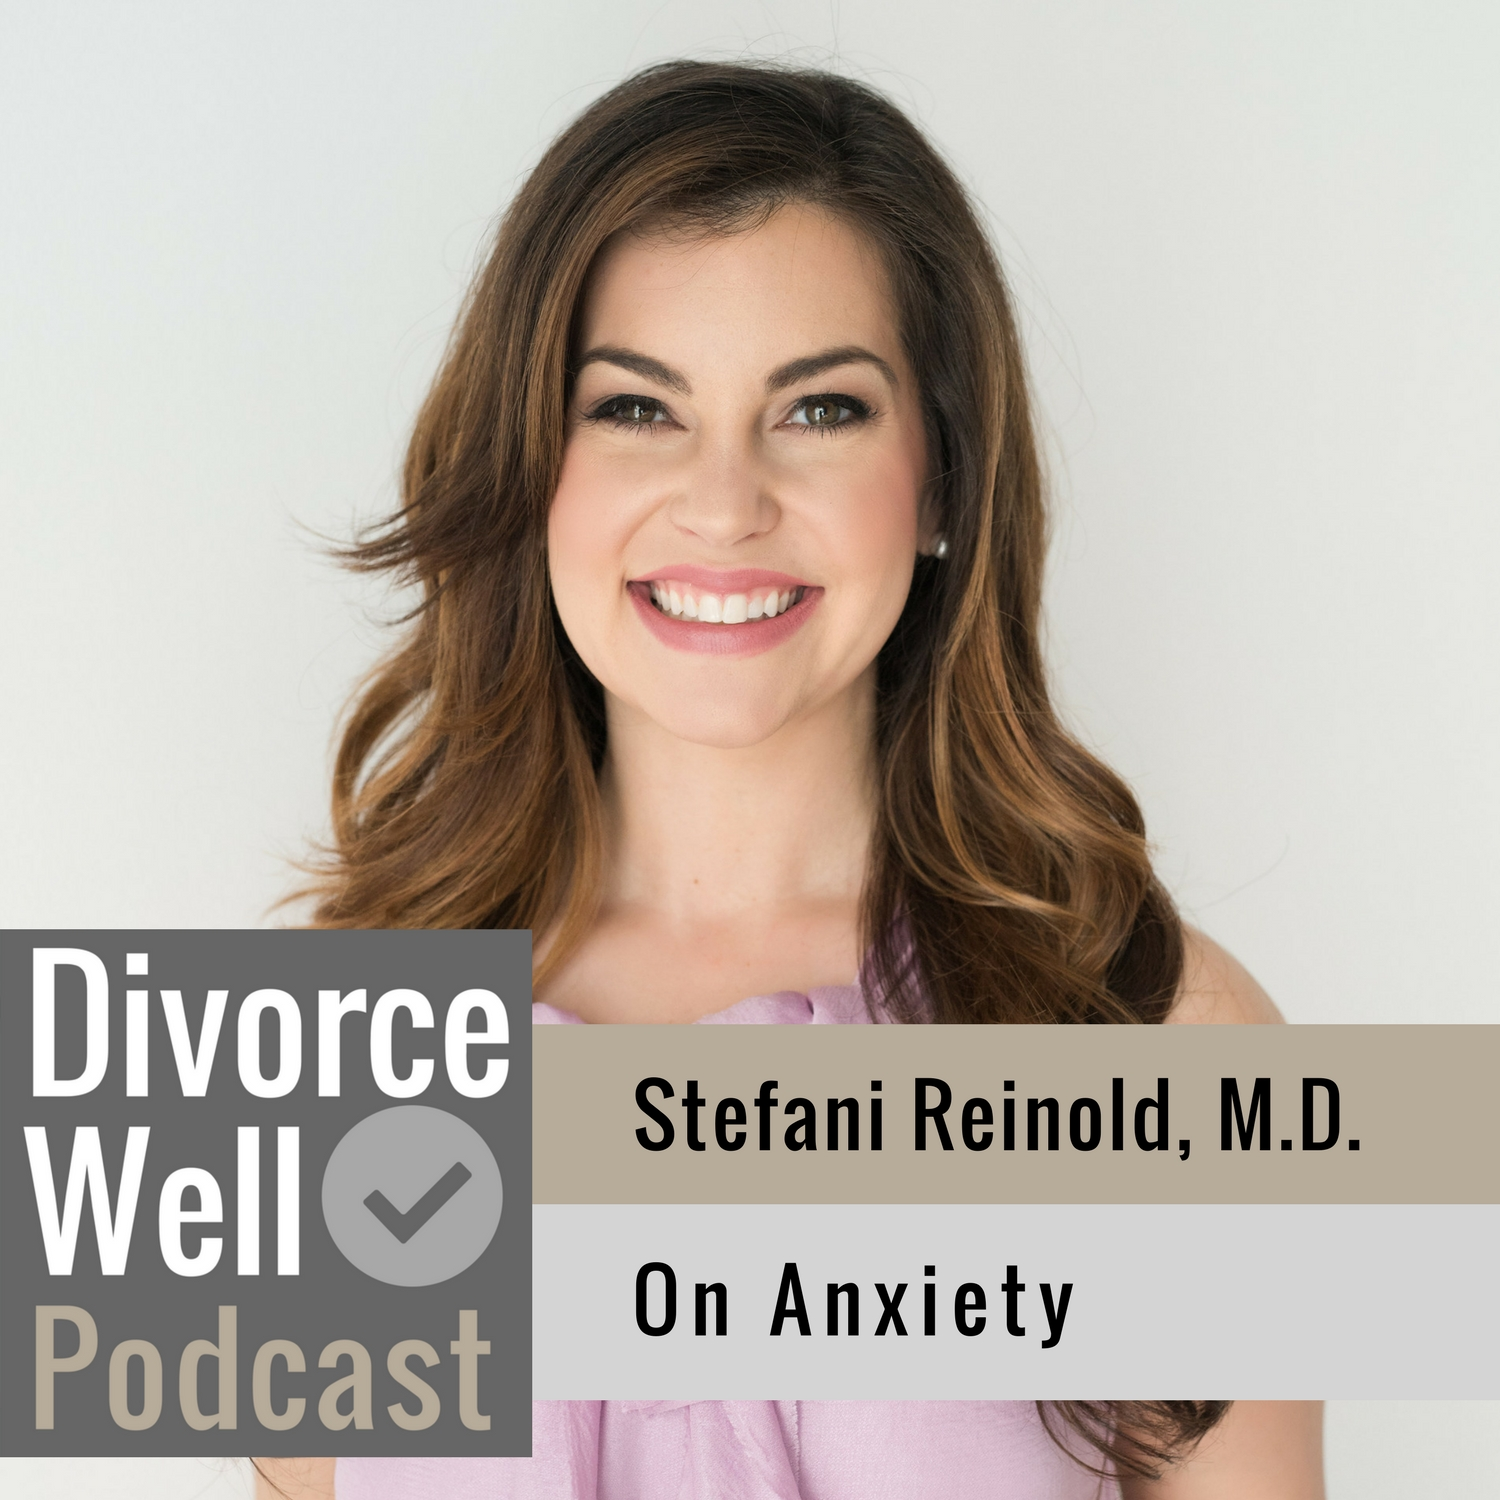 The Divorce Well Podcast - 15 - Managing Anxiety, with Stefani Reinold, M.D.